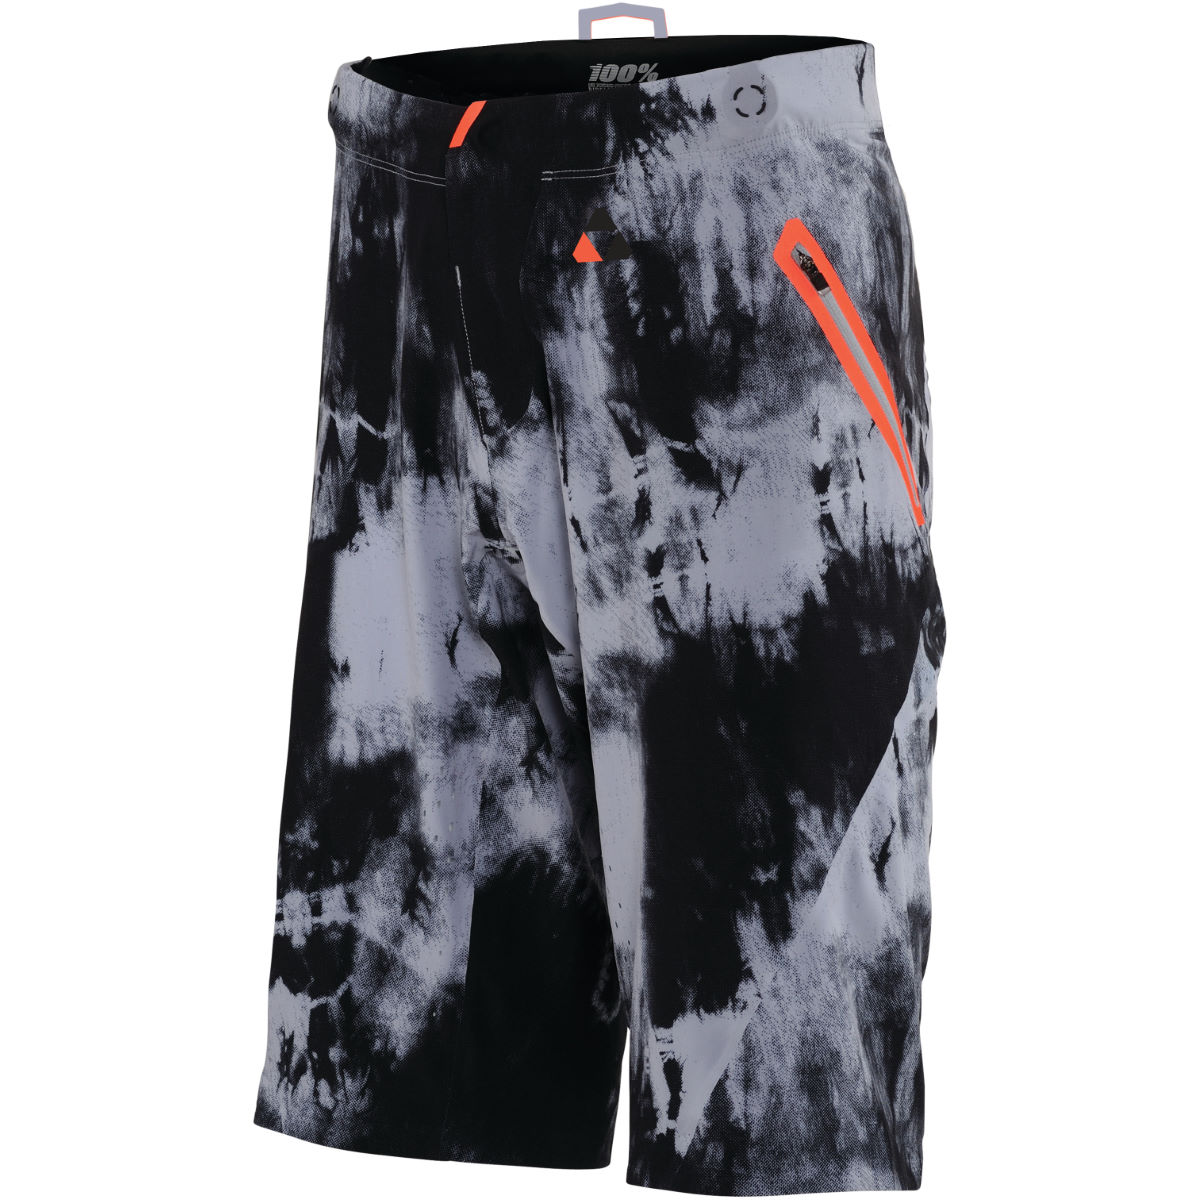 100% Celium Tiedyed Shorts - 28 Black - Tiedyed | Baggy Cycling Shorts